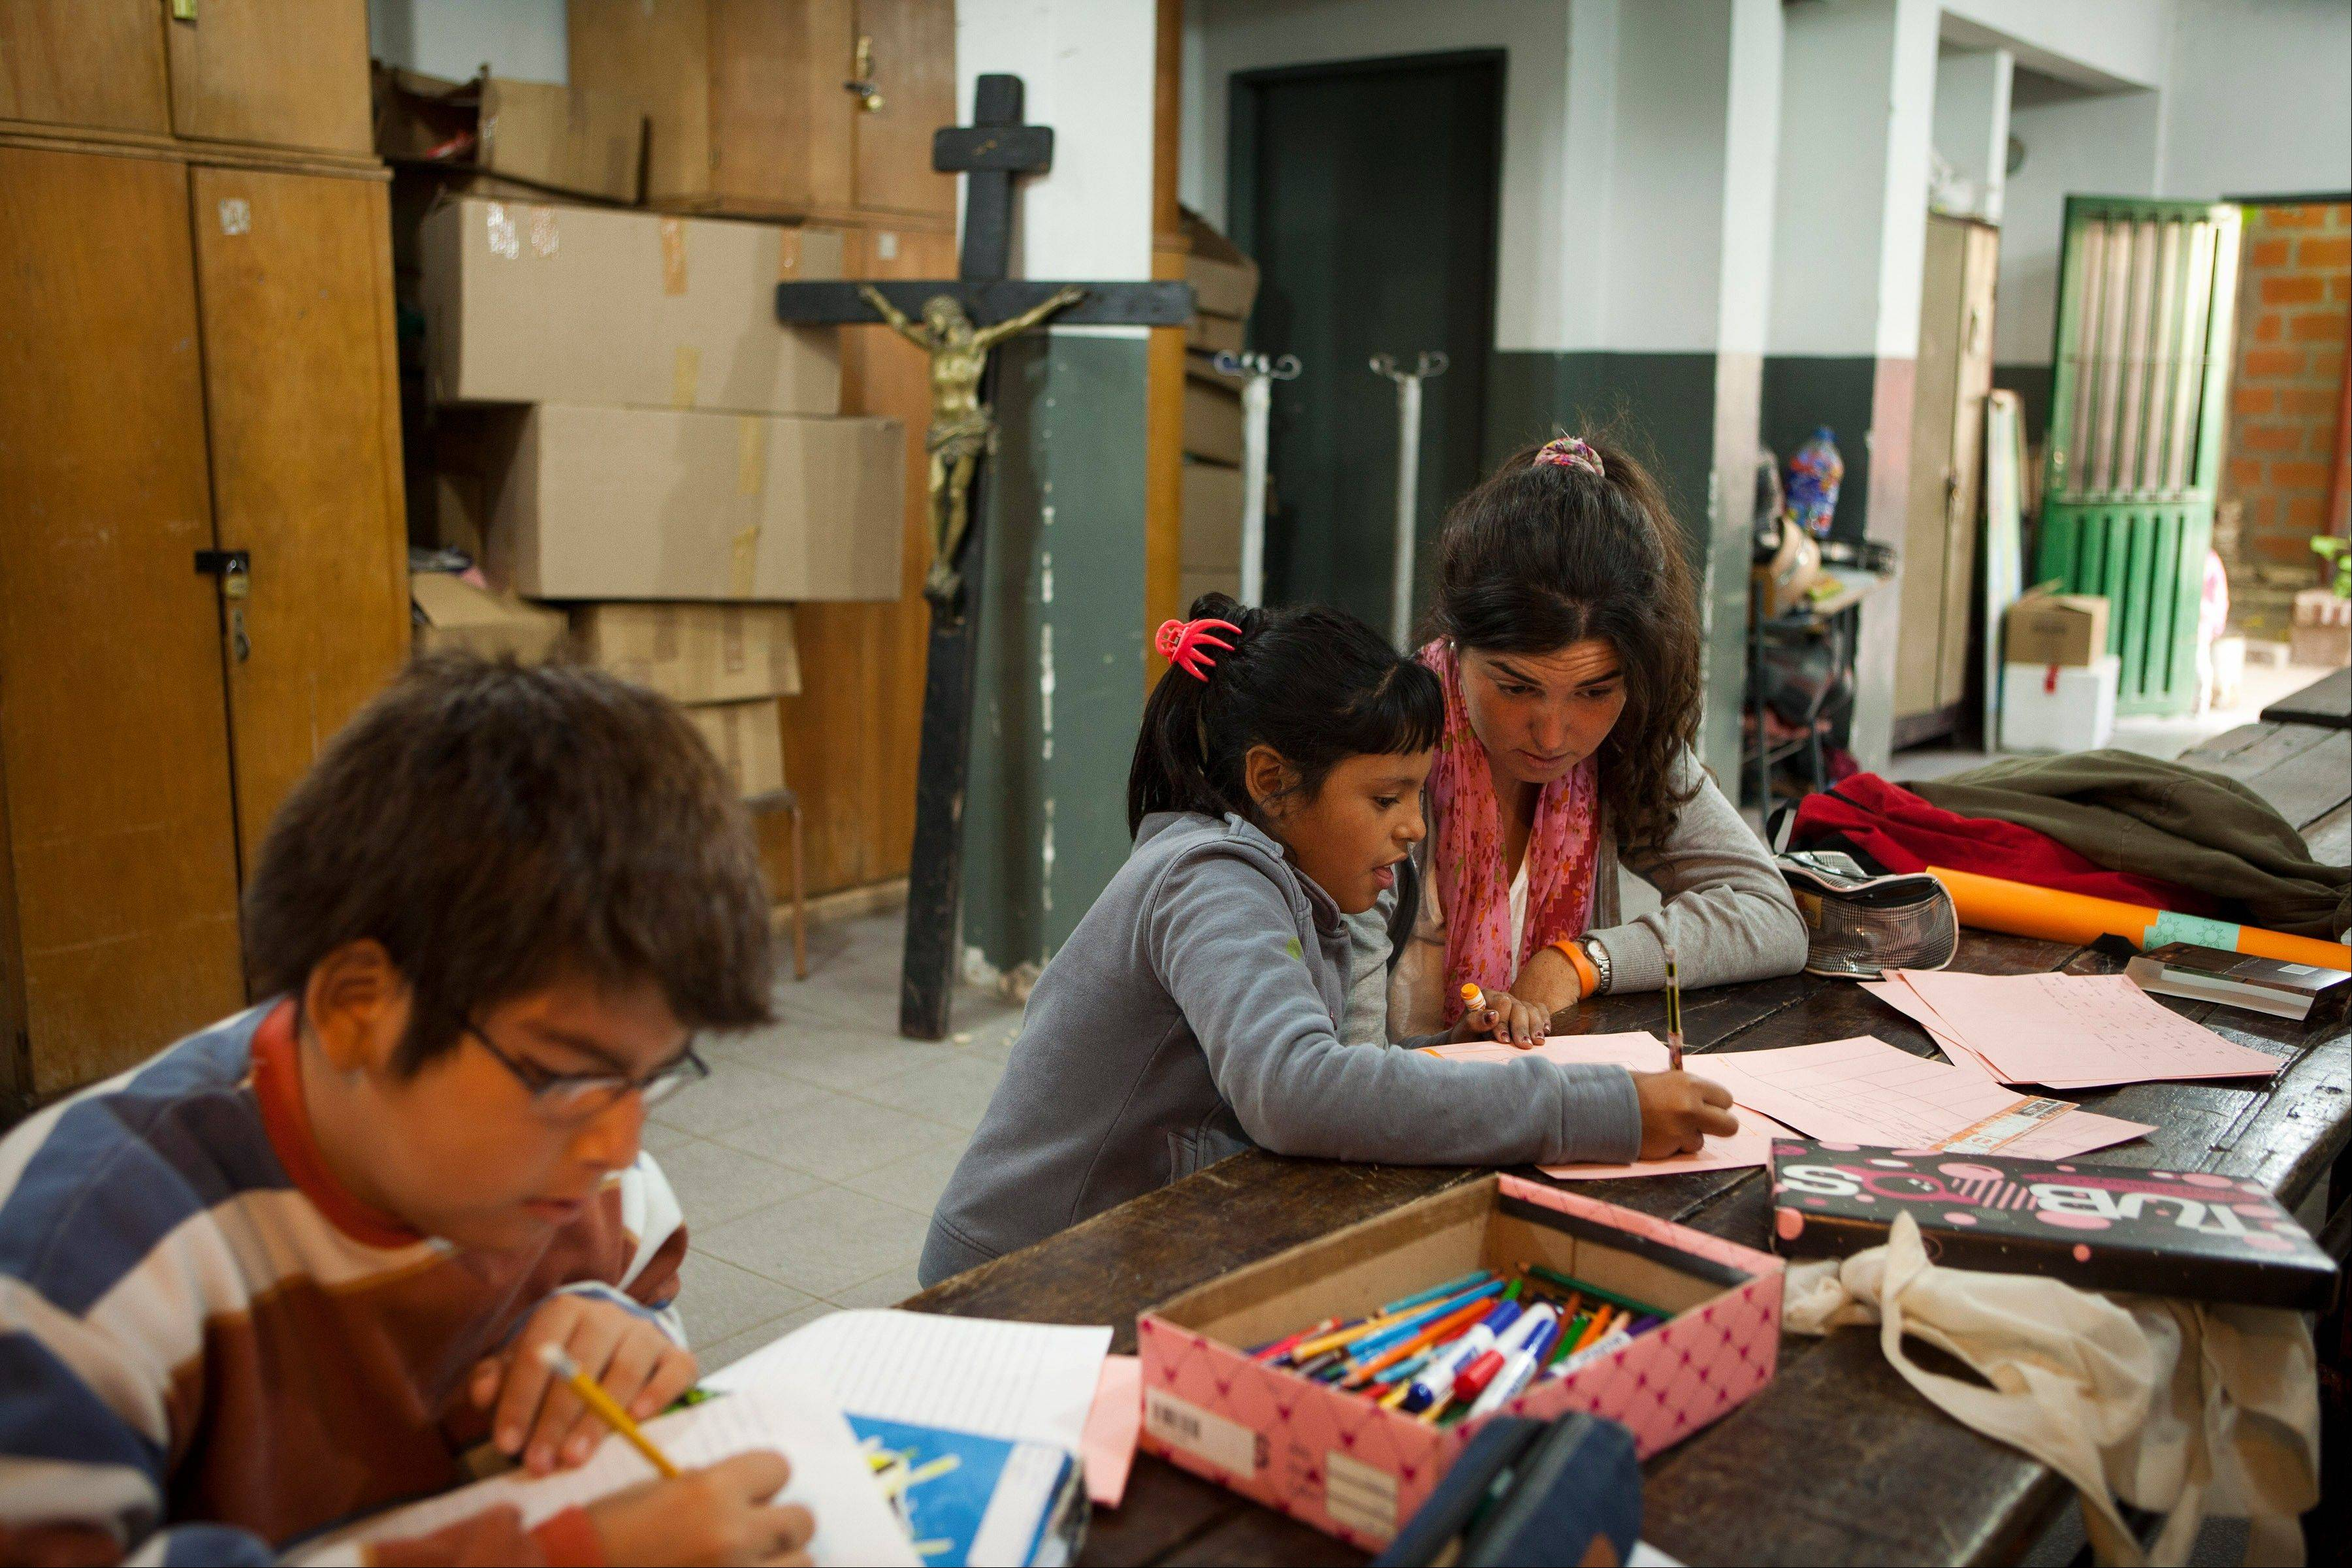 Volunteer Constanza Lascumbres, top right, teaches reading to Nicole Farias, 9, at the Virgin of Caacupe church in a shantytown in Buenos Aires, Argentina. At Villa 21-24, a slum so dangerous that most outsiders wouldn't dare go in, Jorge Mario Bergoglio often showed up unannounced over the course of more than 20 years. For many at the slum's Caacupe Virgin of the Miracles Church, it's nothing short of a miracle that the same man is now the pope.